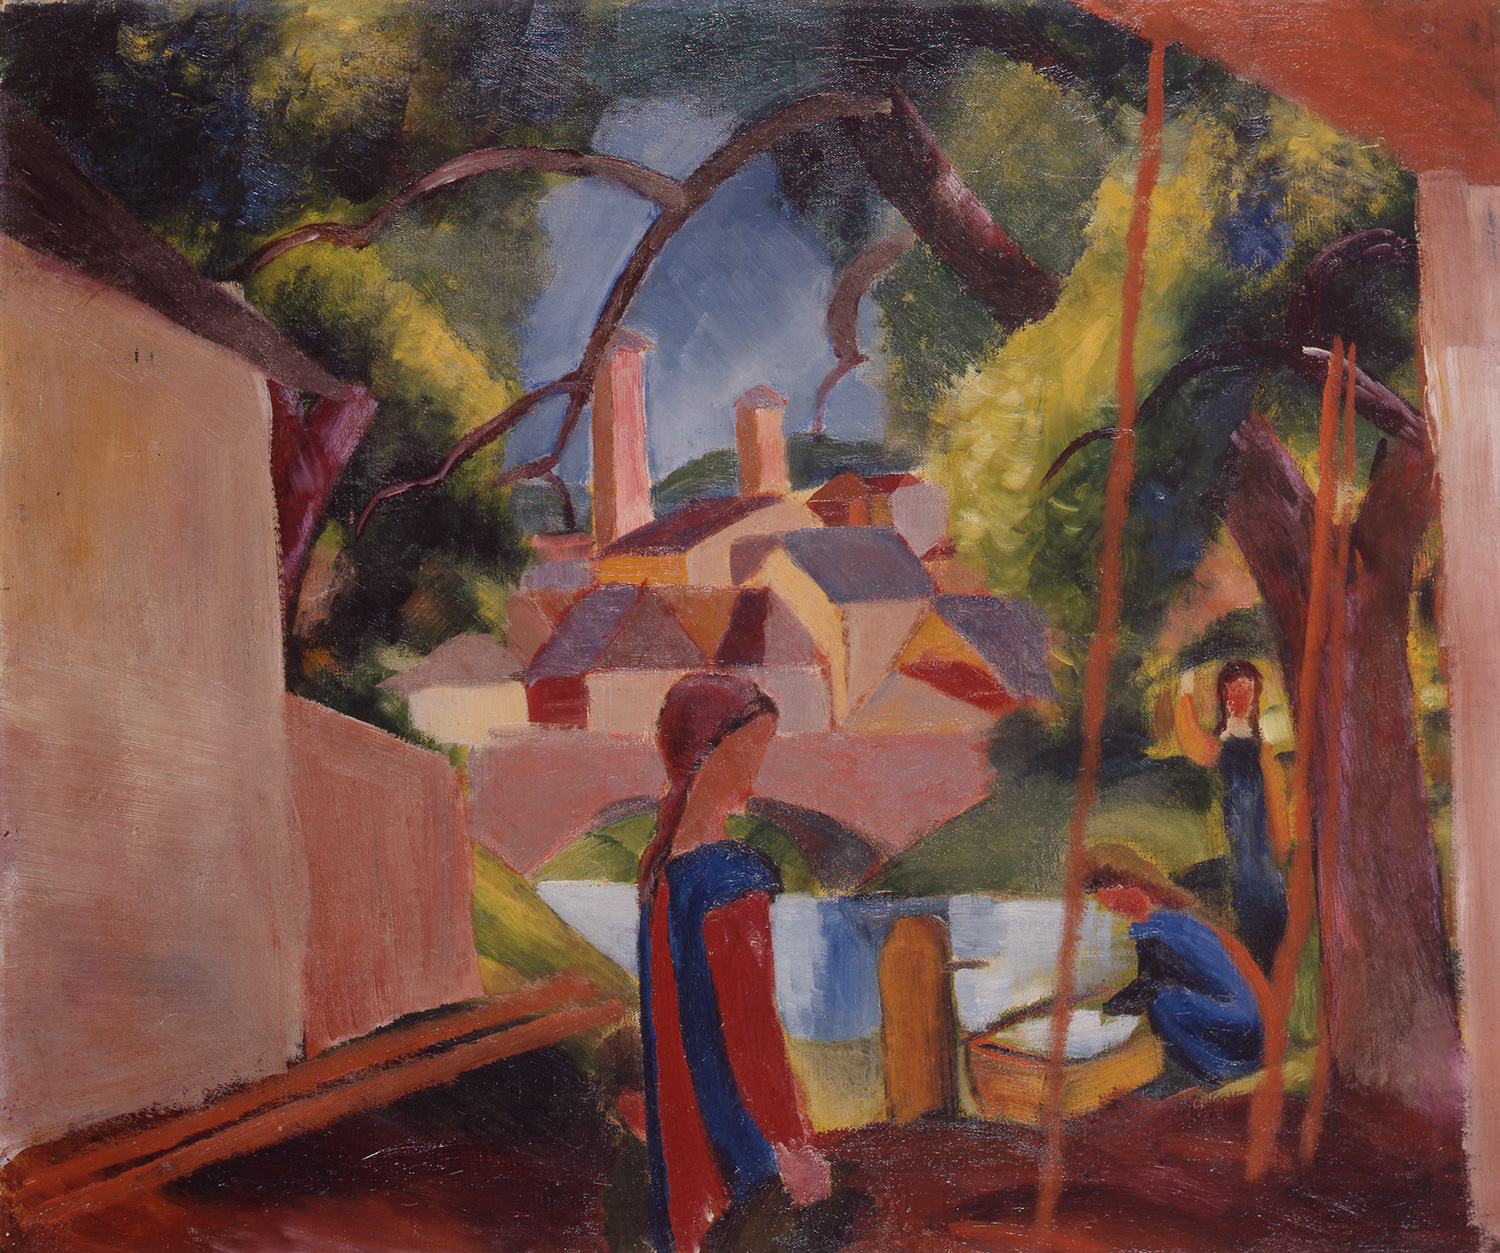 Macke_Kinder-am-Brunnen_1914_web.jpg